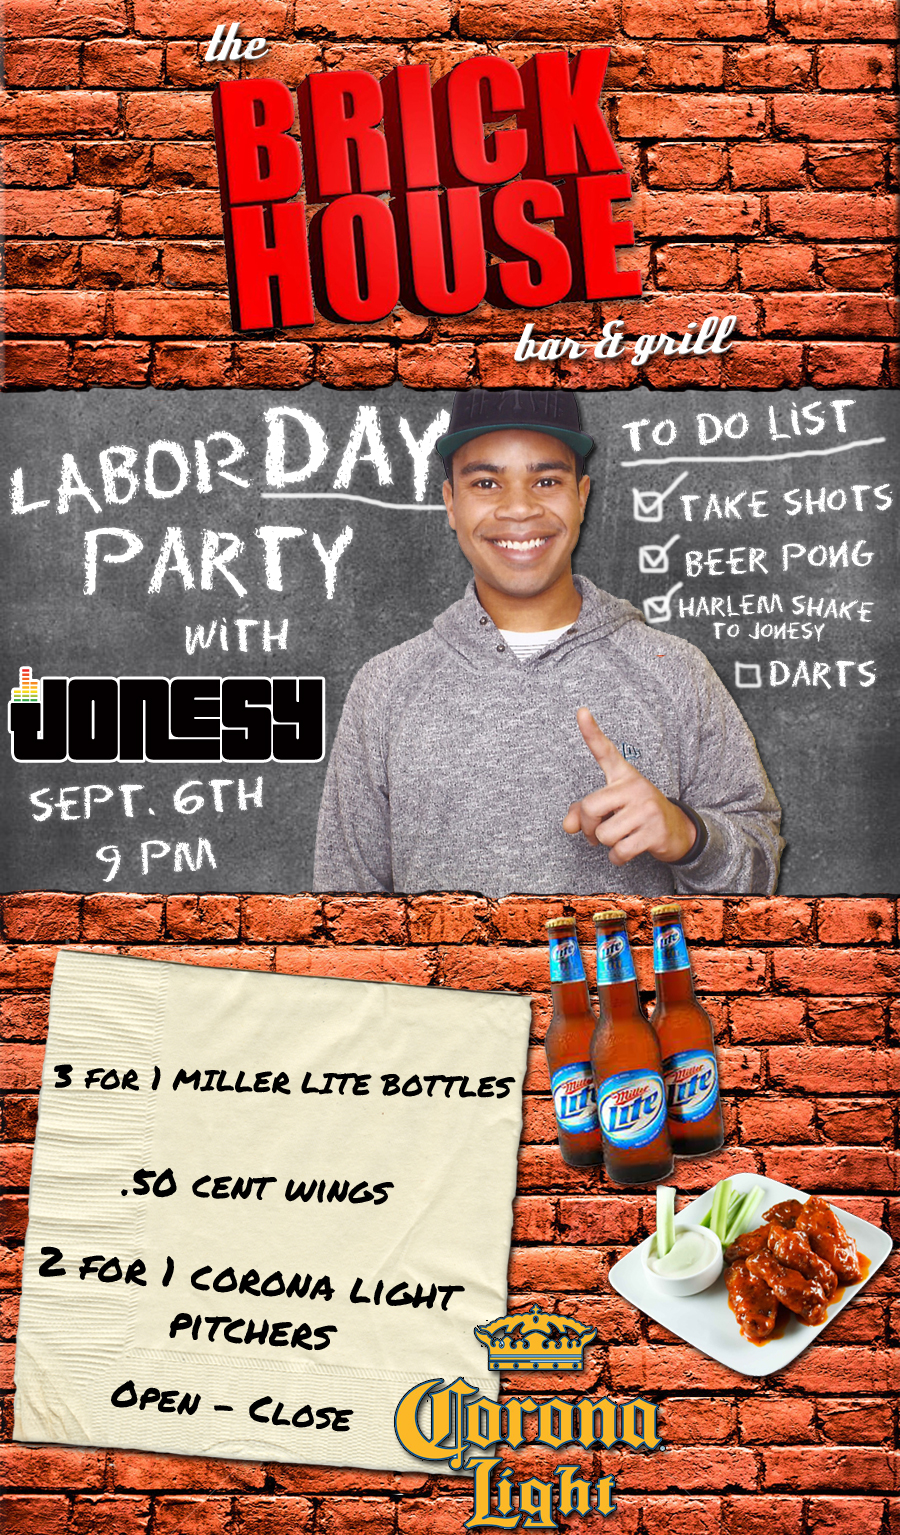 LABOR DAY SUNDAY, Sept.  6th we bring the party to THE BRICKHOUSE BAR & GRILL @ 9PM.  3 For 1 Miller Lite Bottles, .50 cent wings & 2 For 1 Corona Light Pitchers, open - close.  Stamford, meet me there!